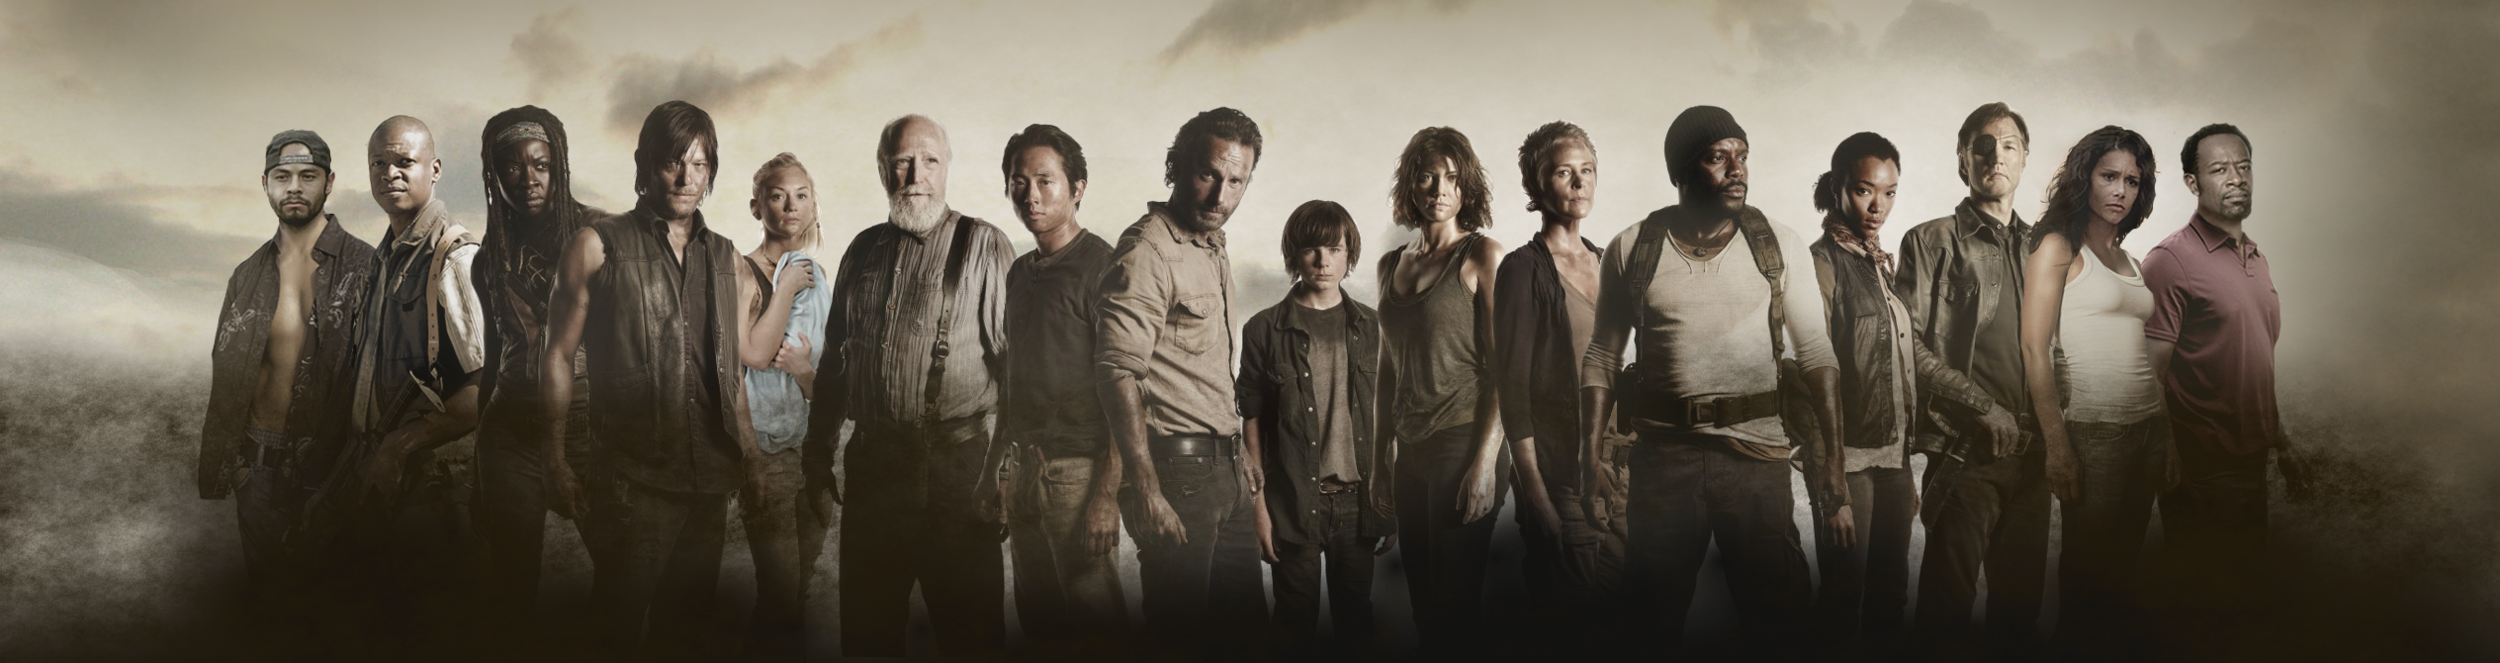 "Cast of ""The Walking Dead"""